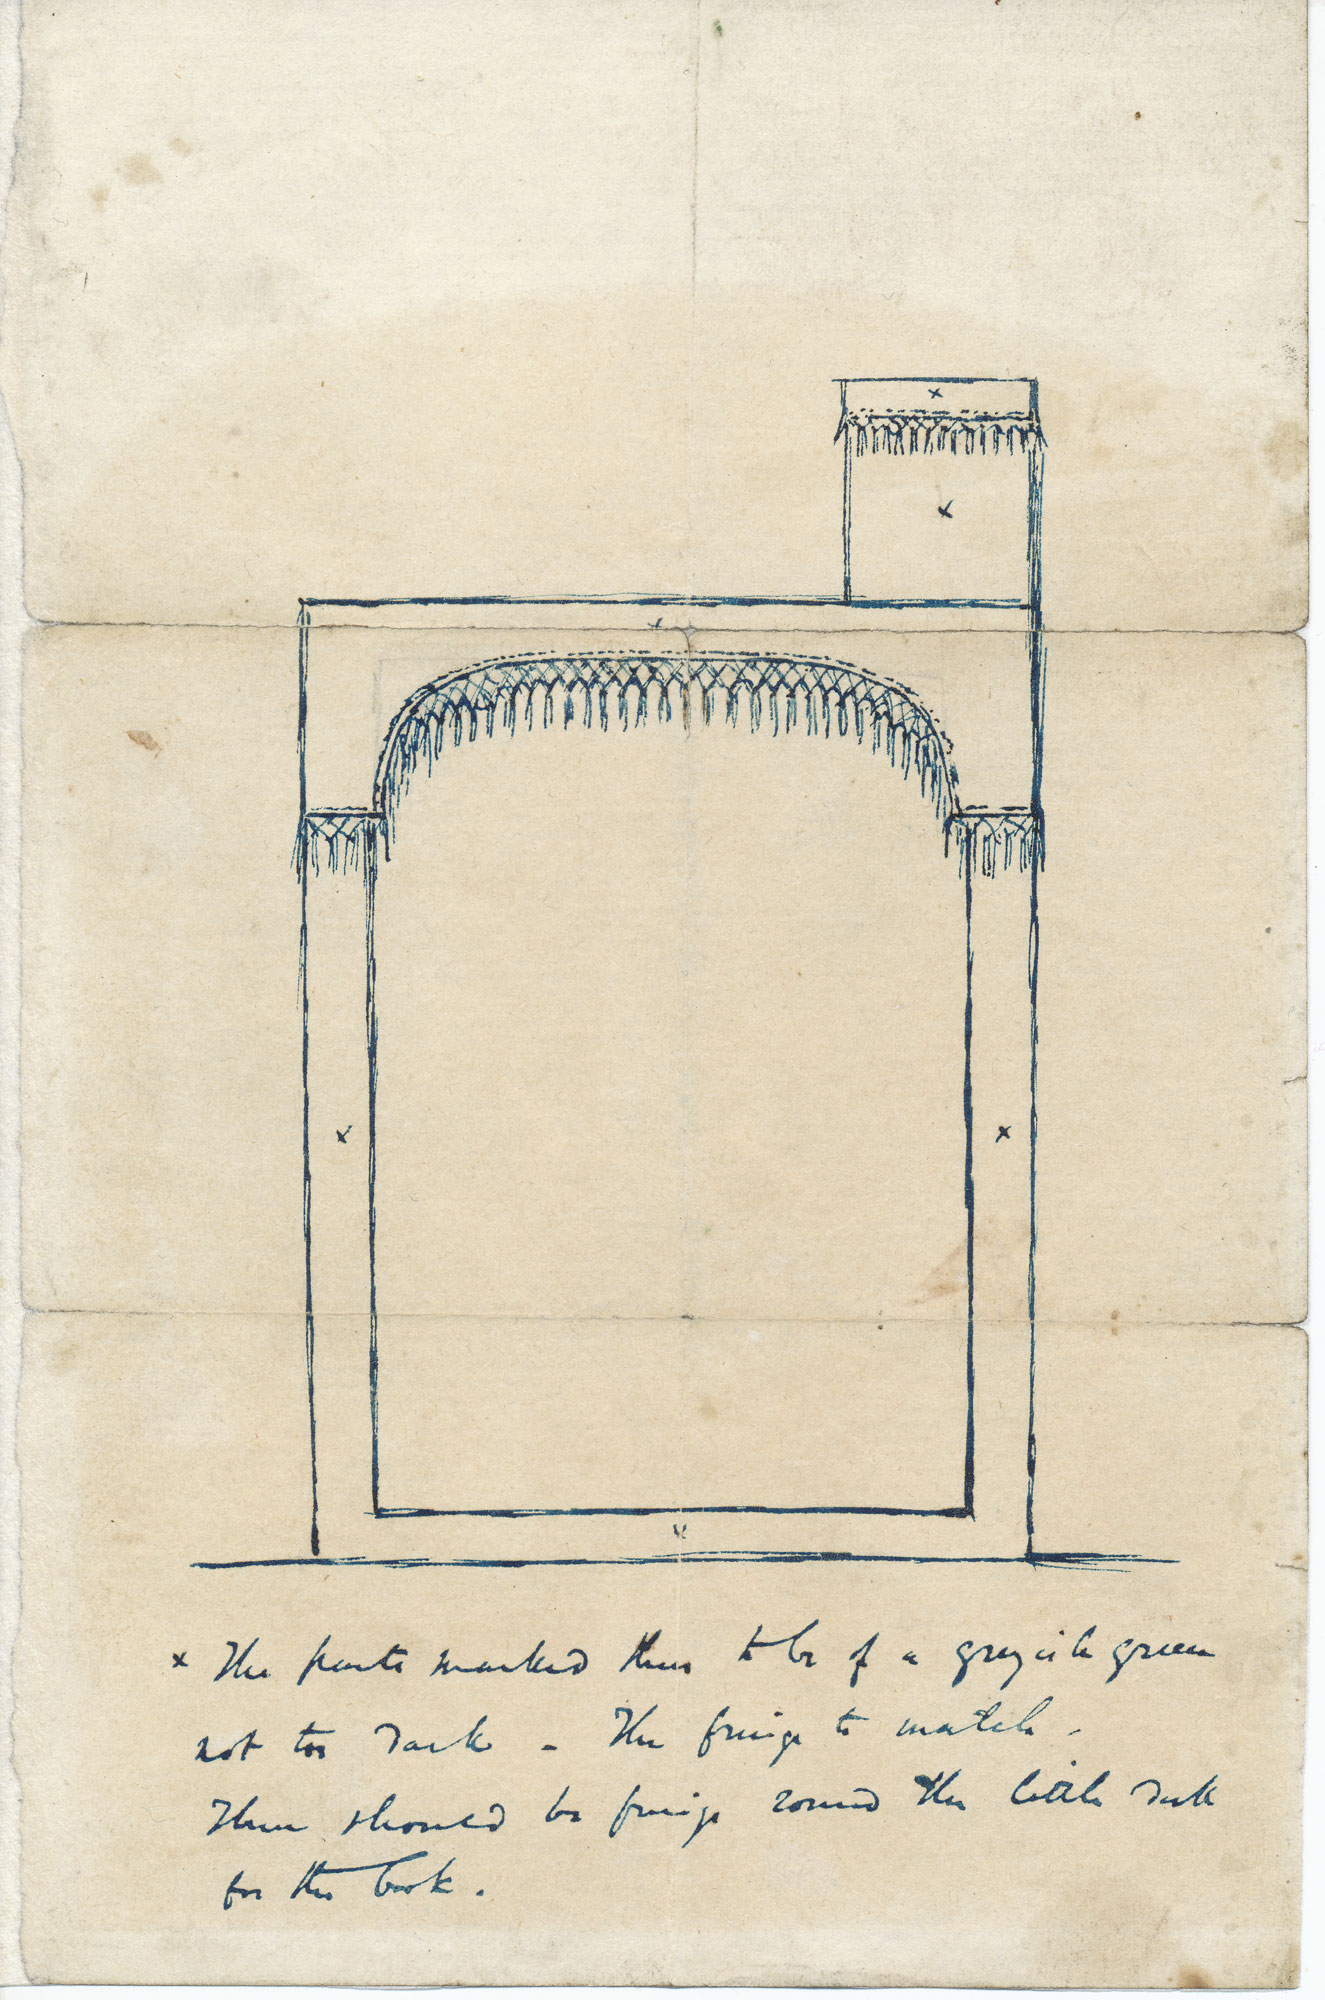 Charles Dickens's original designs for a reading desk